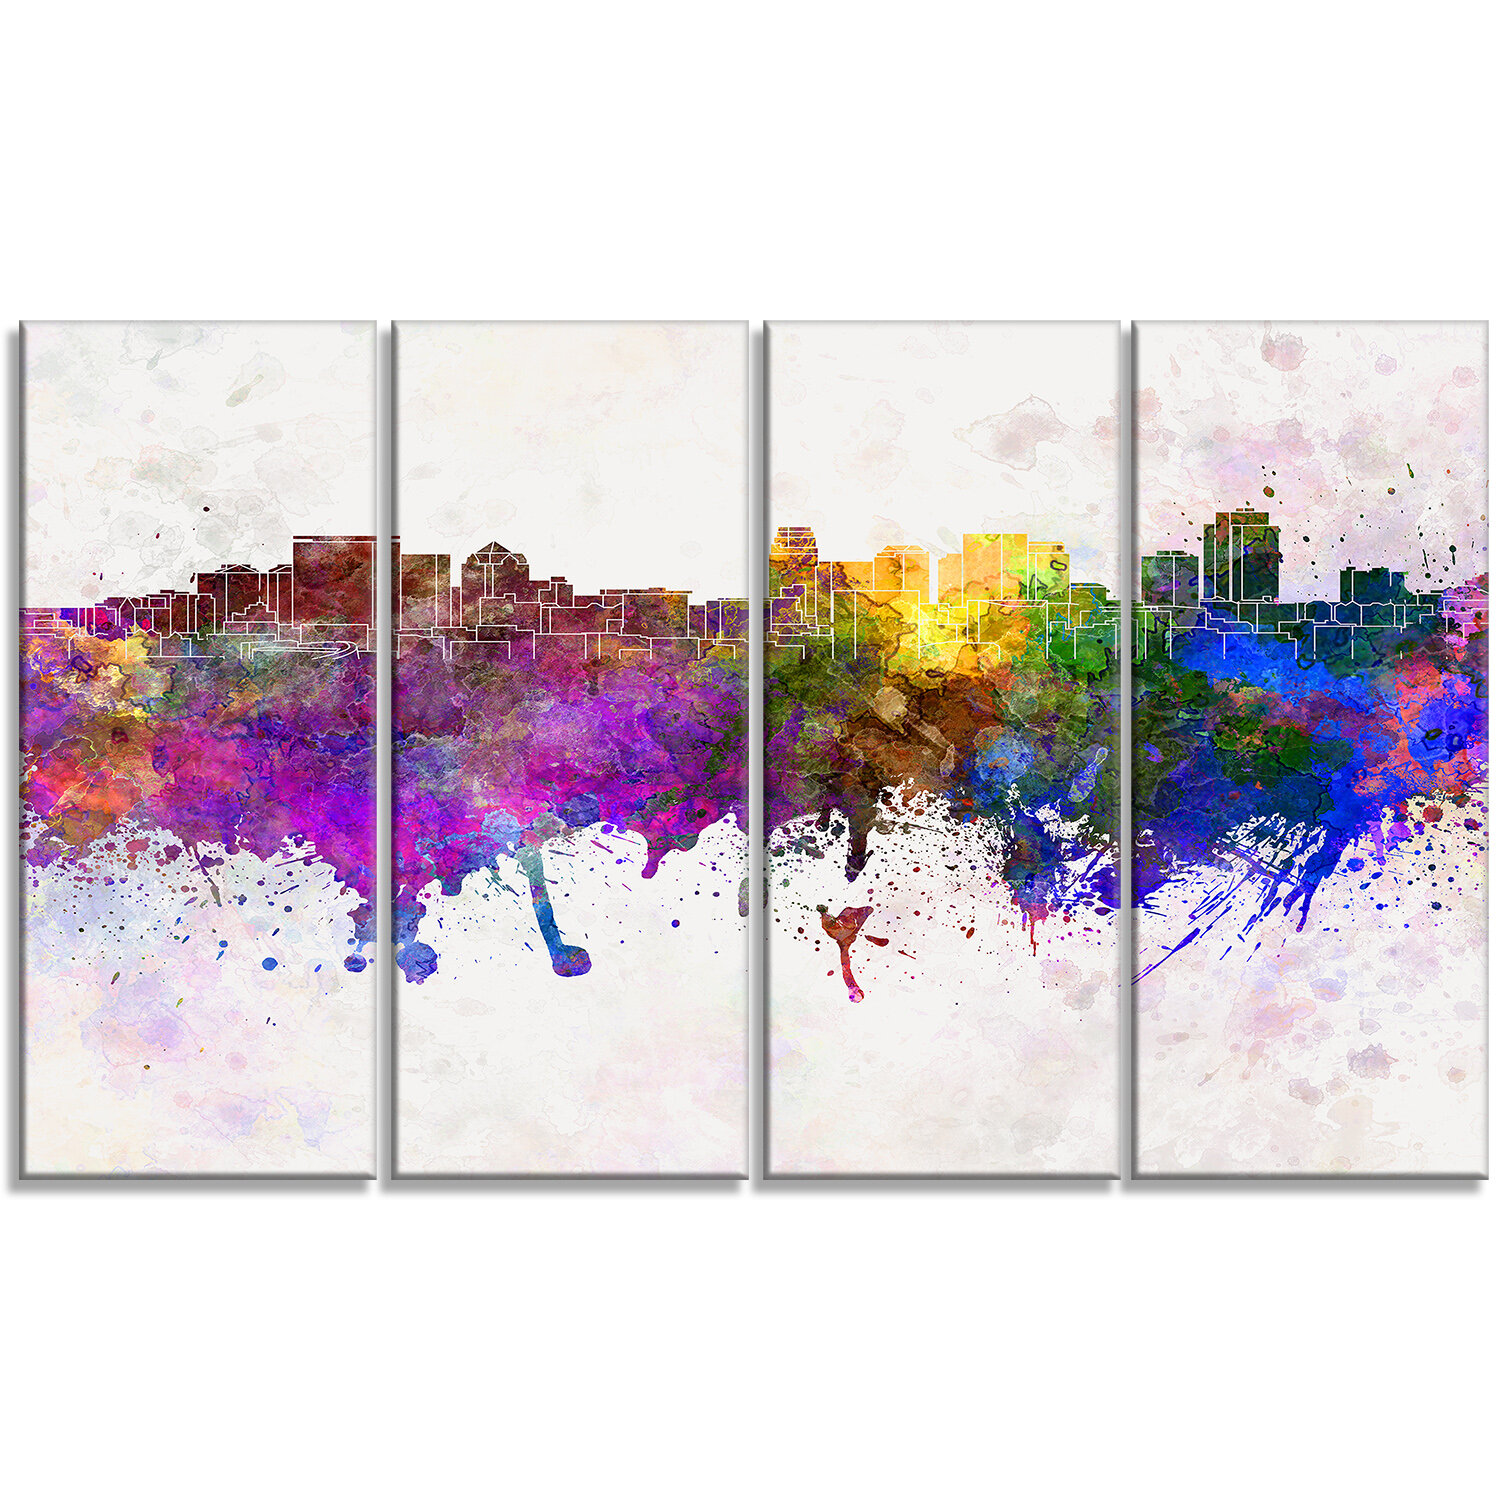 Designart Salt Lake City Skyline Cityscape 4 Piece Painting Print On Wrapped Canvas Set Wayfair